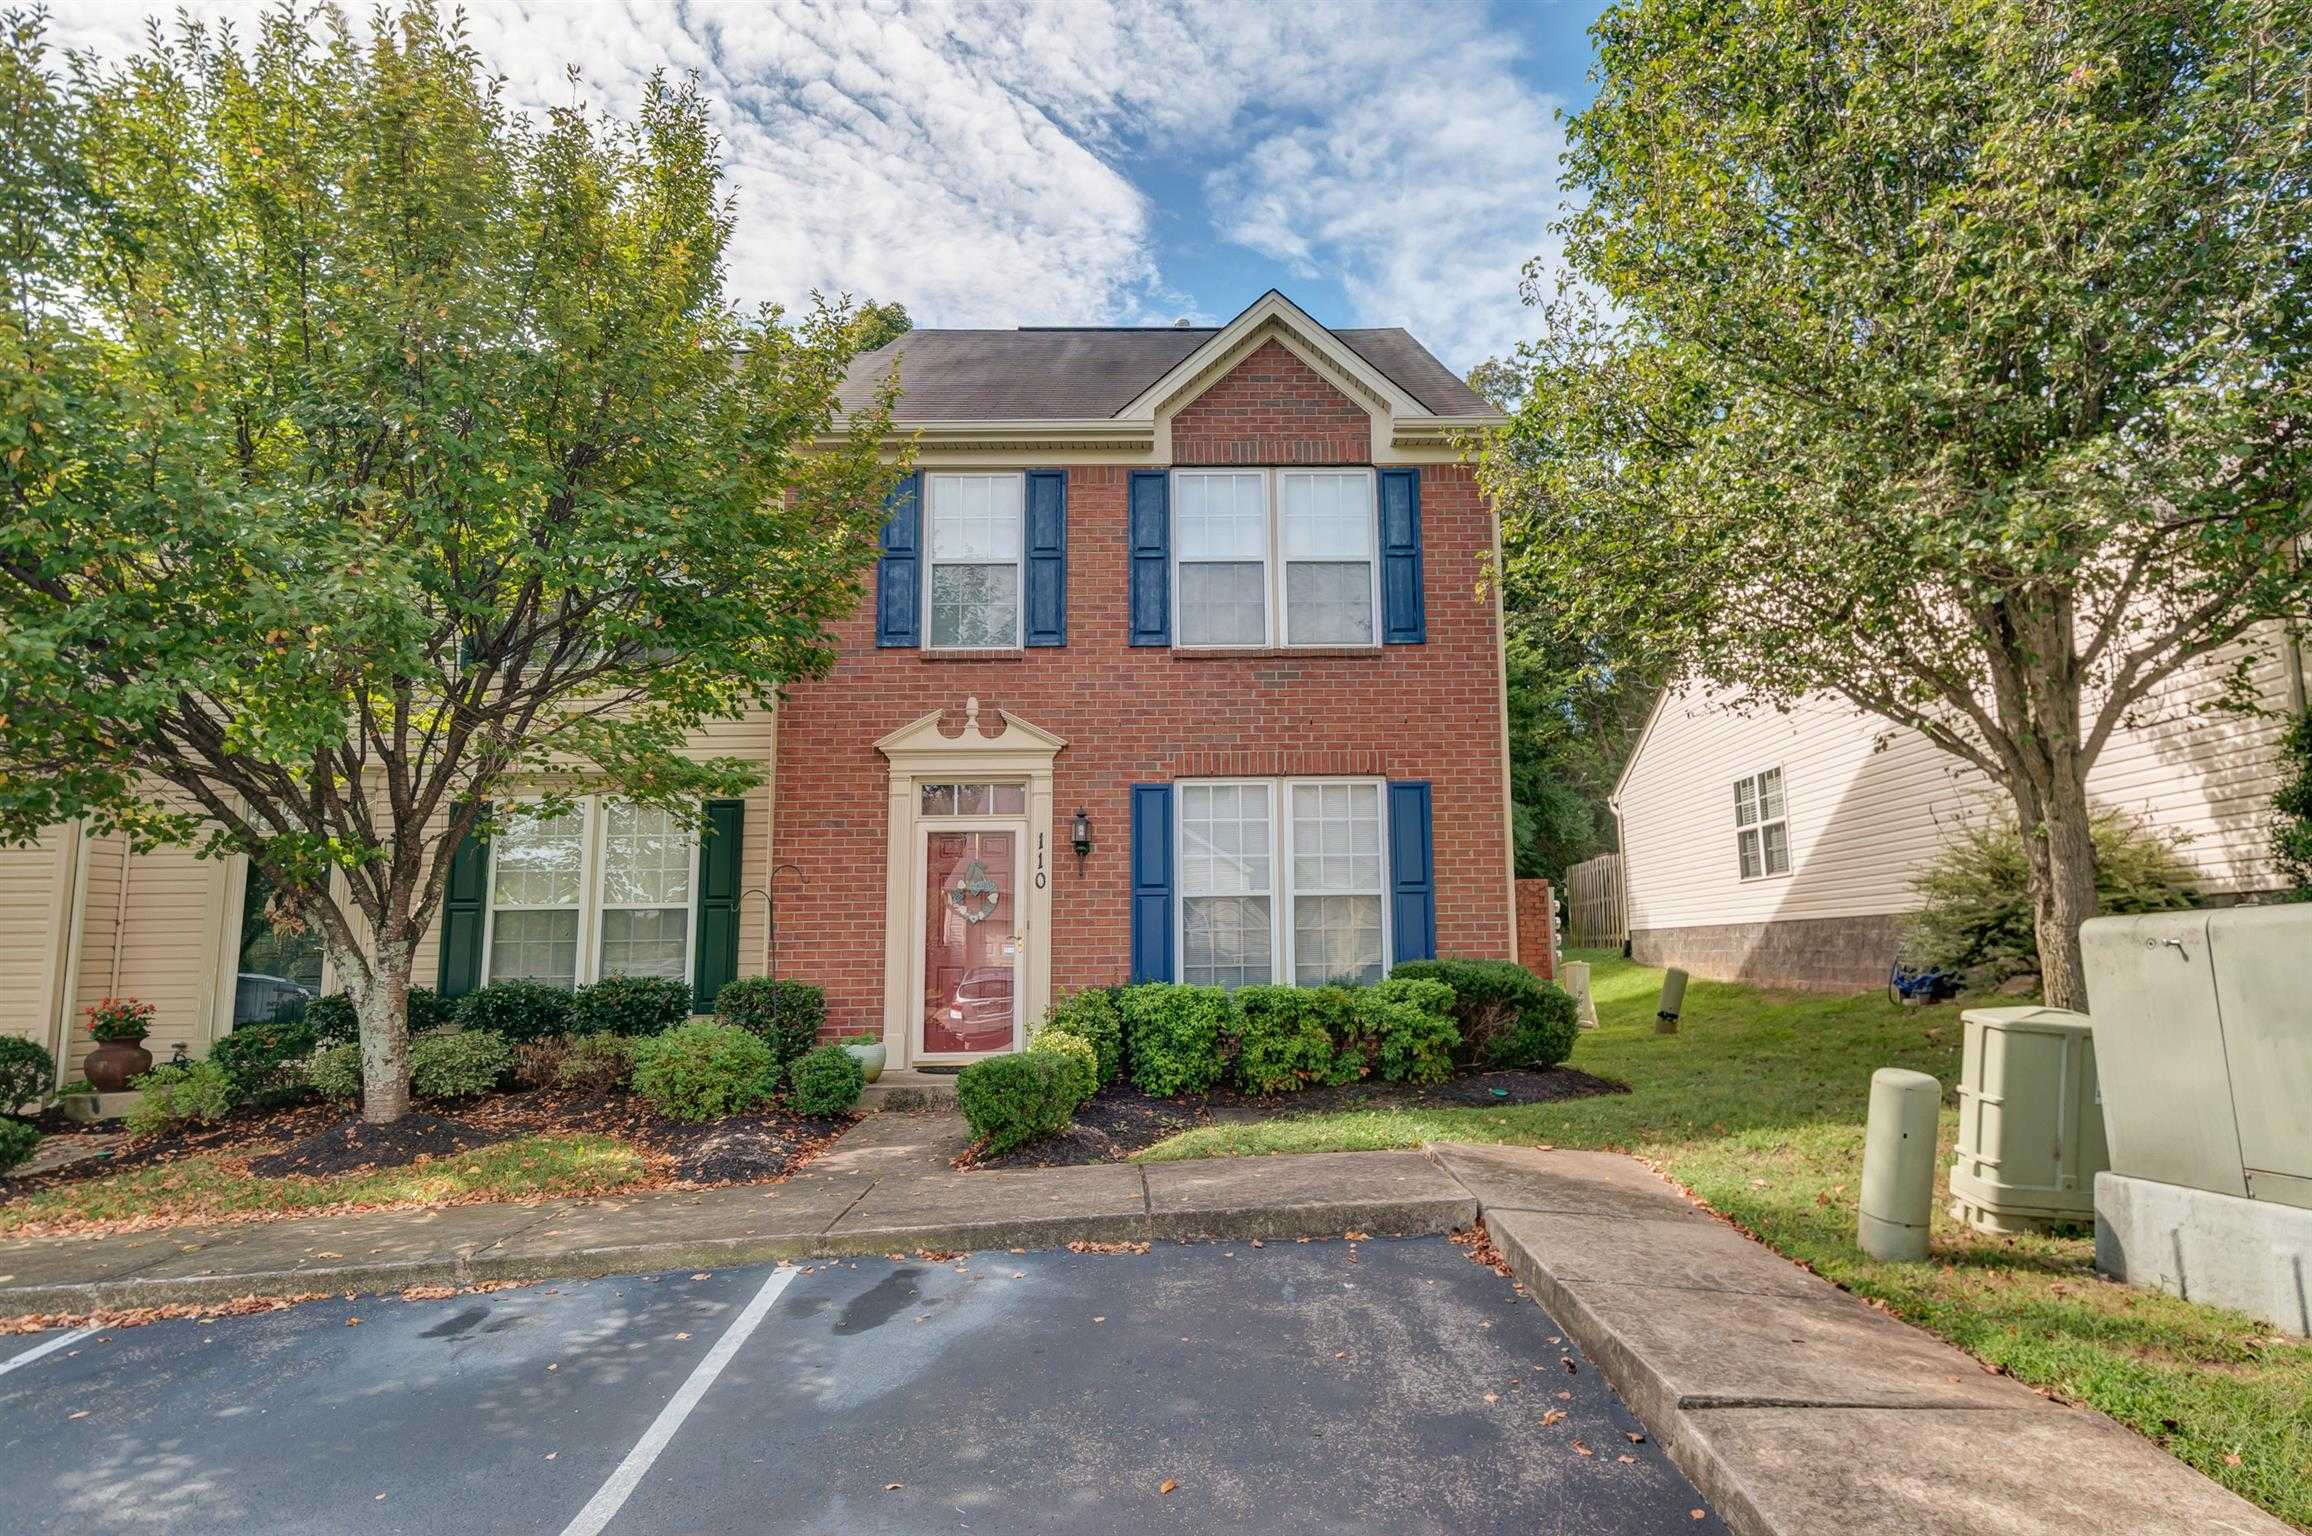 $155,500 - 2Br/2Ba -  for Sale in Smith Springs Townhomes, Antioch